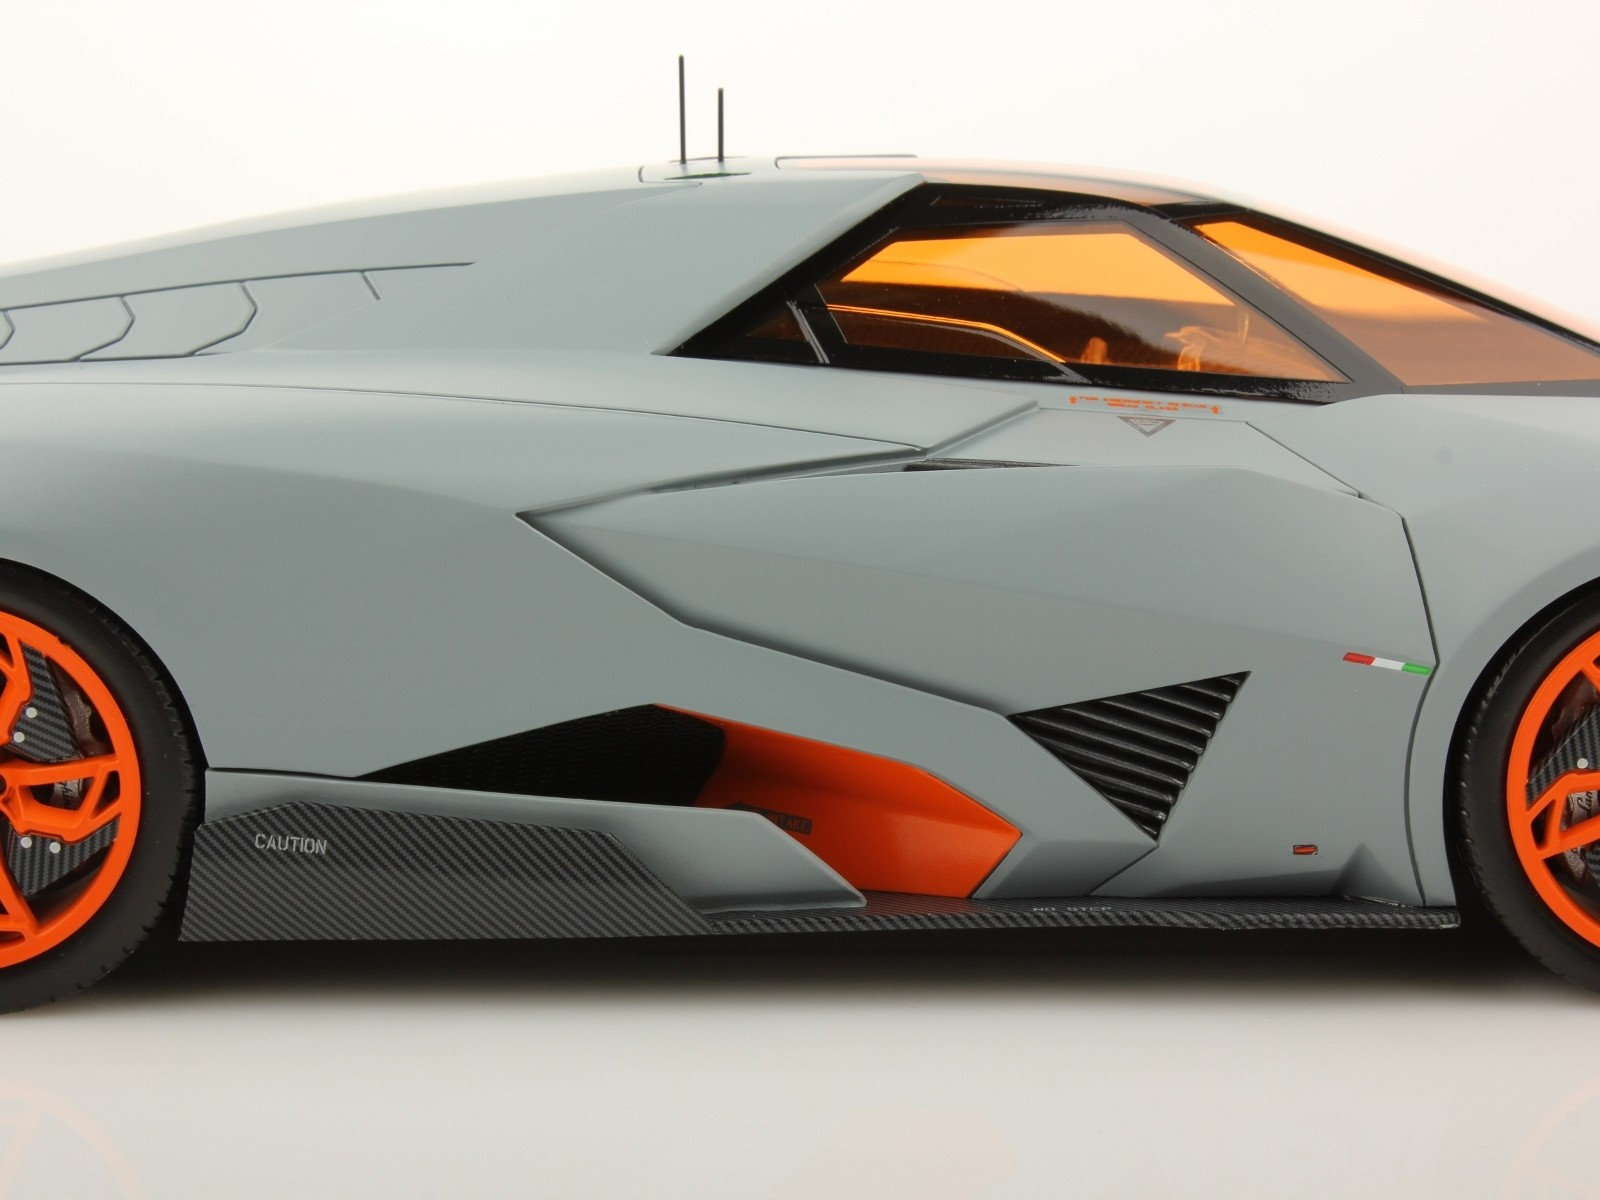 Lamborghini Egoista Gallery | 2017 / 2018 Cars Reviews